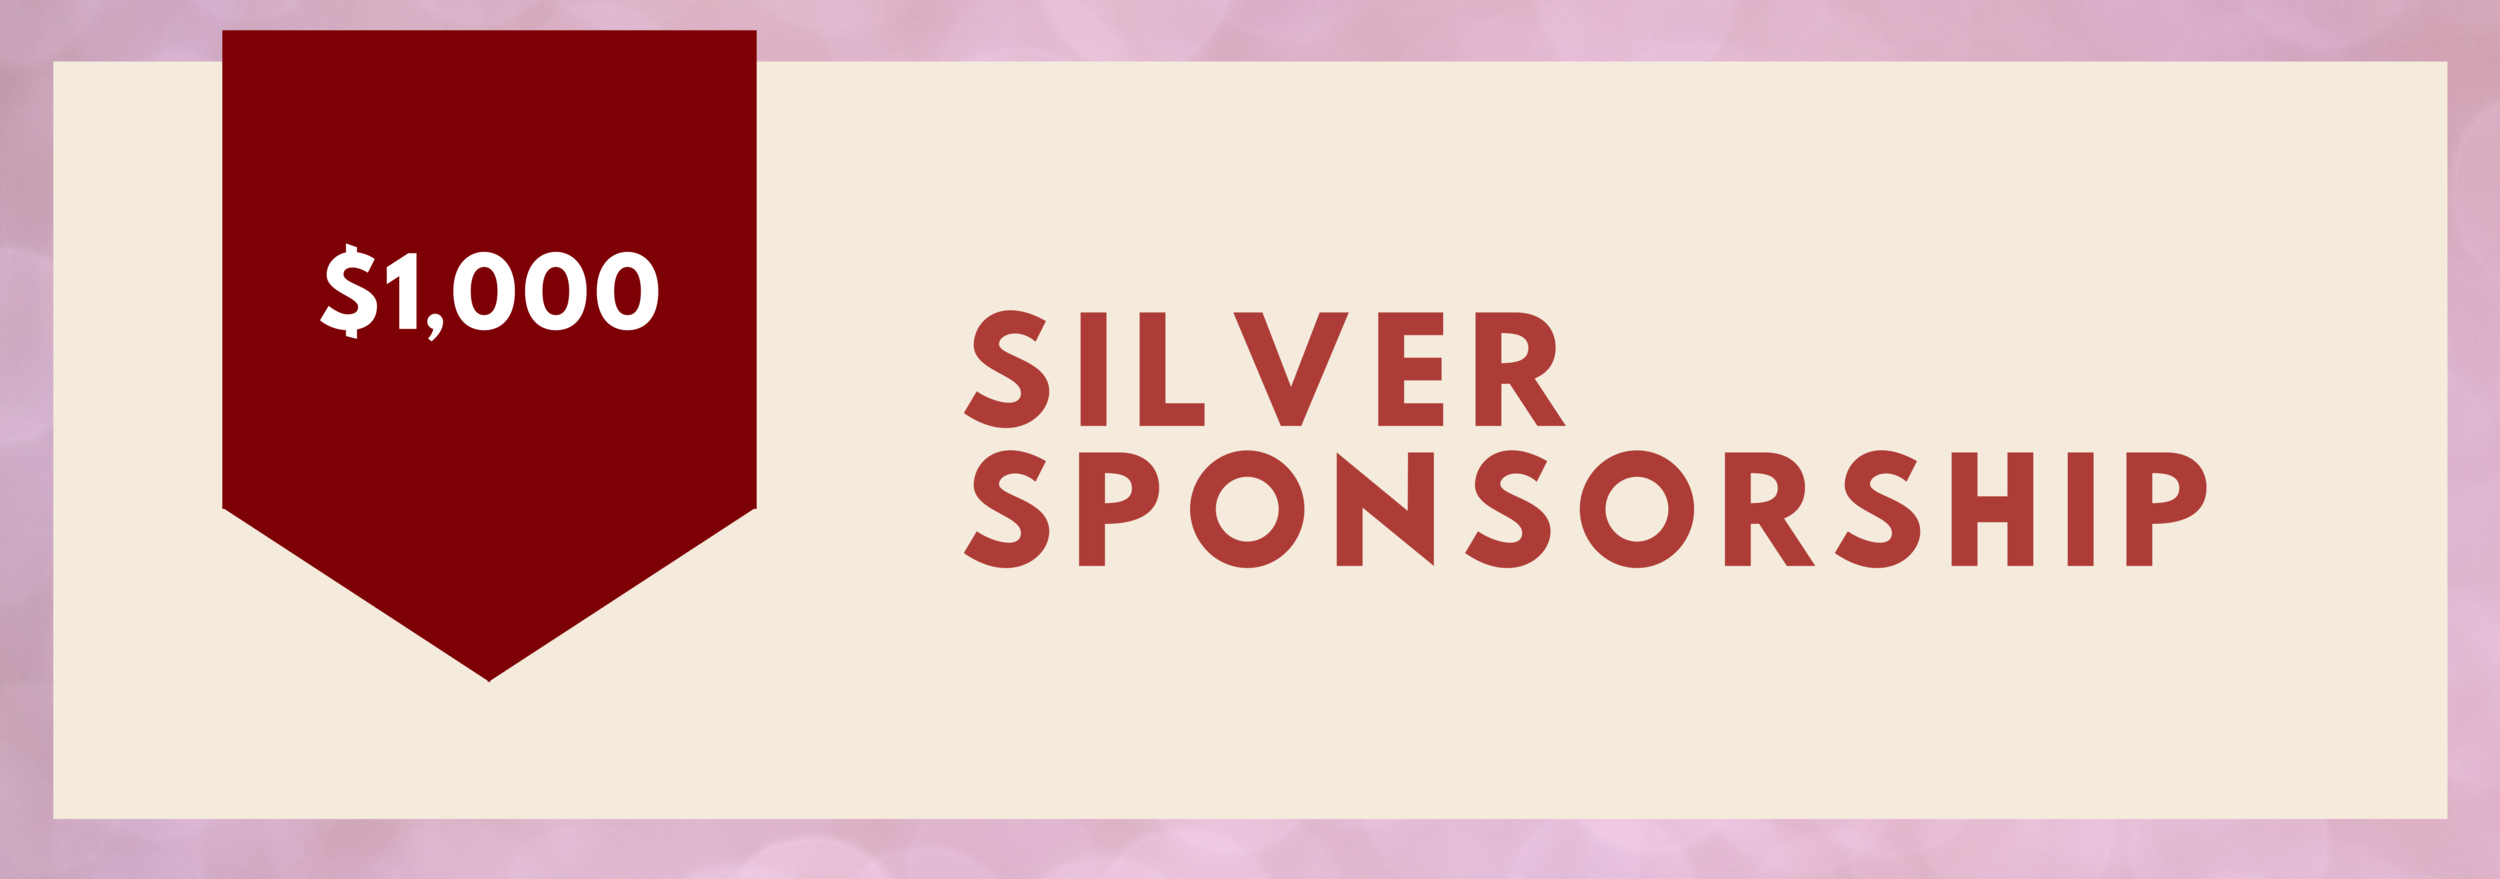 Silver Sponsorship - $1,000   • Logo in monthly email newsletter • Recognition post on social media • Logo on ticket sale site • Logo on promotional posters • Logo on event invitations  • Half page ad in gala program • (2) Passes to VIP Private Reception • Table of Ten to the Awards Gala